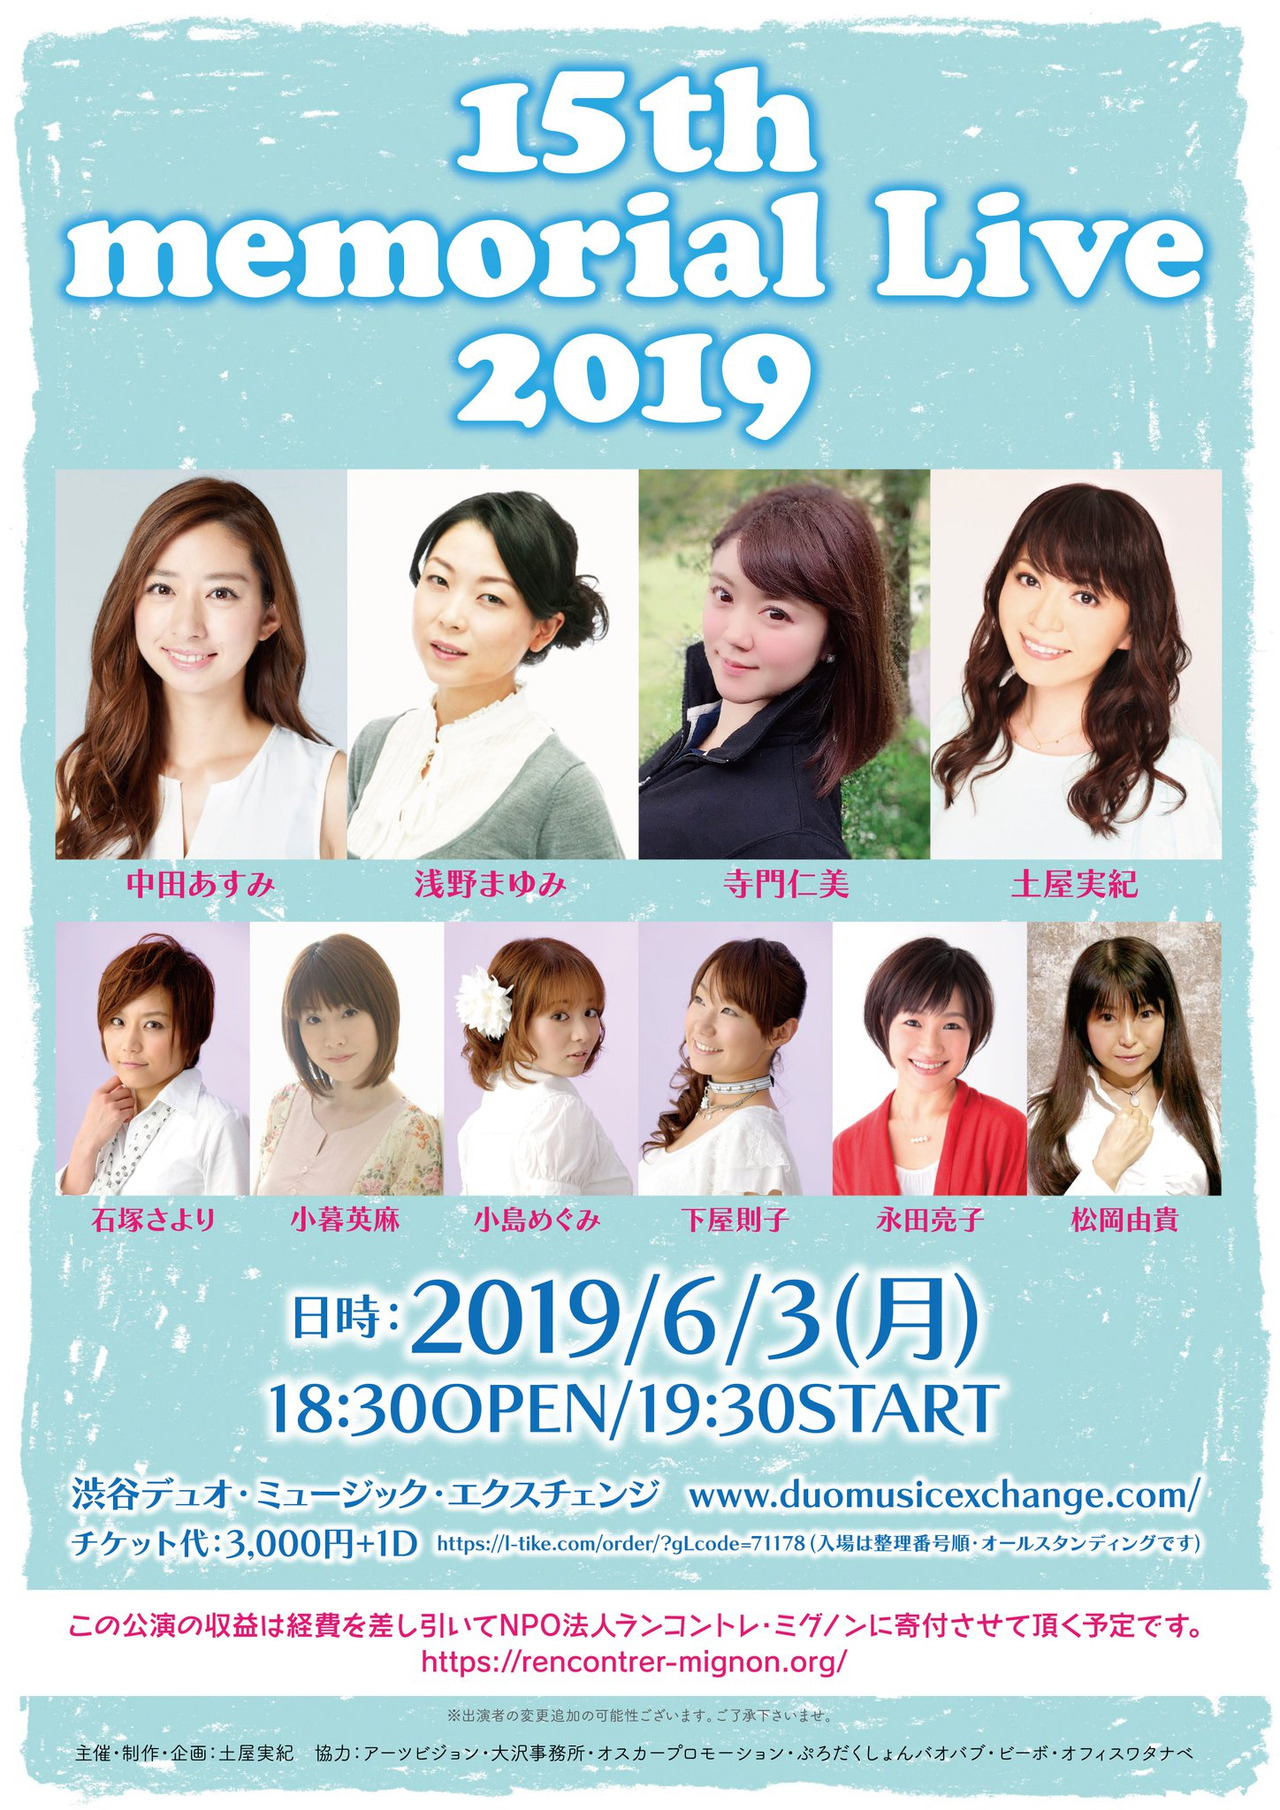 Concert Stage: 15th memorial Live 2019 (June 3)